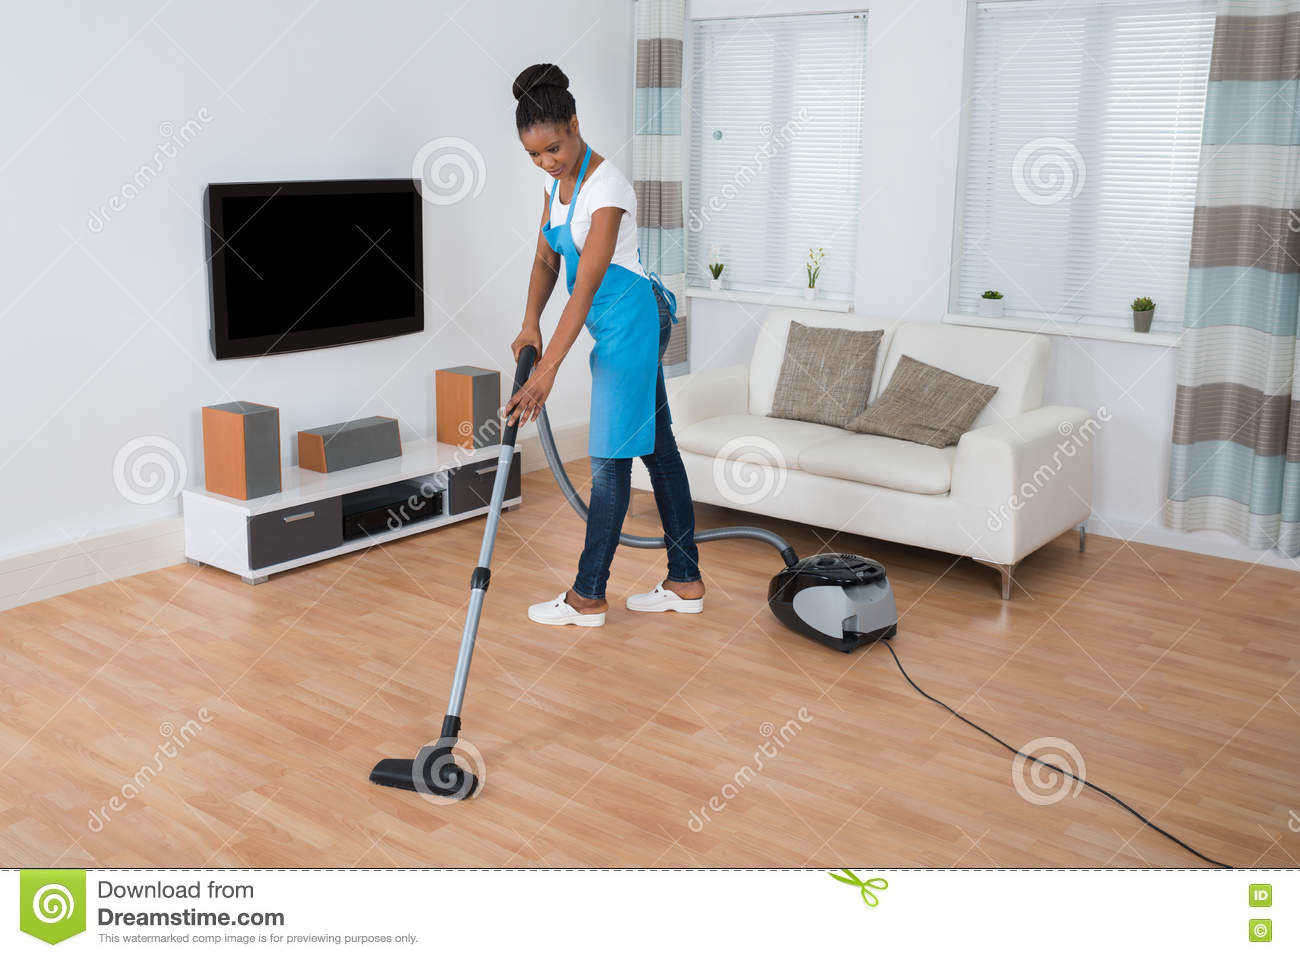 Hardwood Floor Maintenance Cleaning Of Woman Cleaning Floor with Vacuum Cleaner Stock Image Image Of Inside Woman Cleaning Floor with Vacuum Cleaner